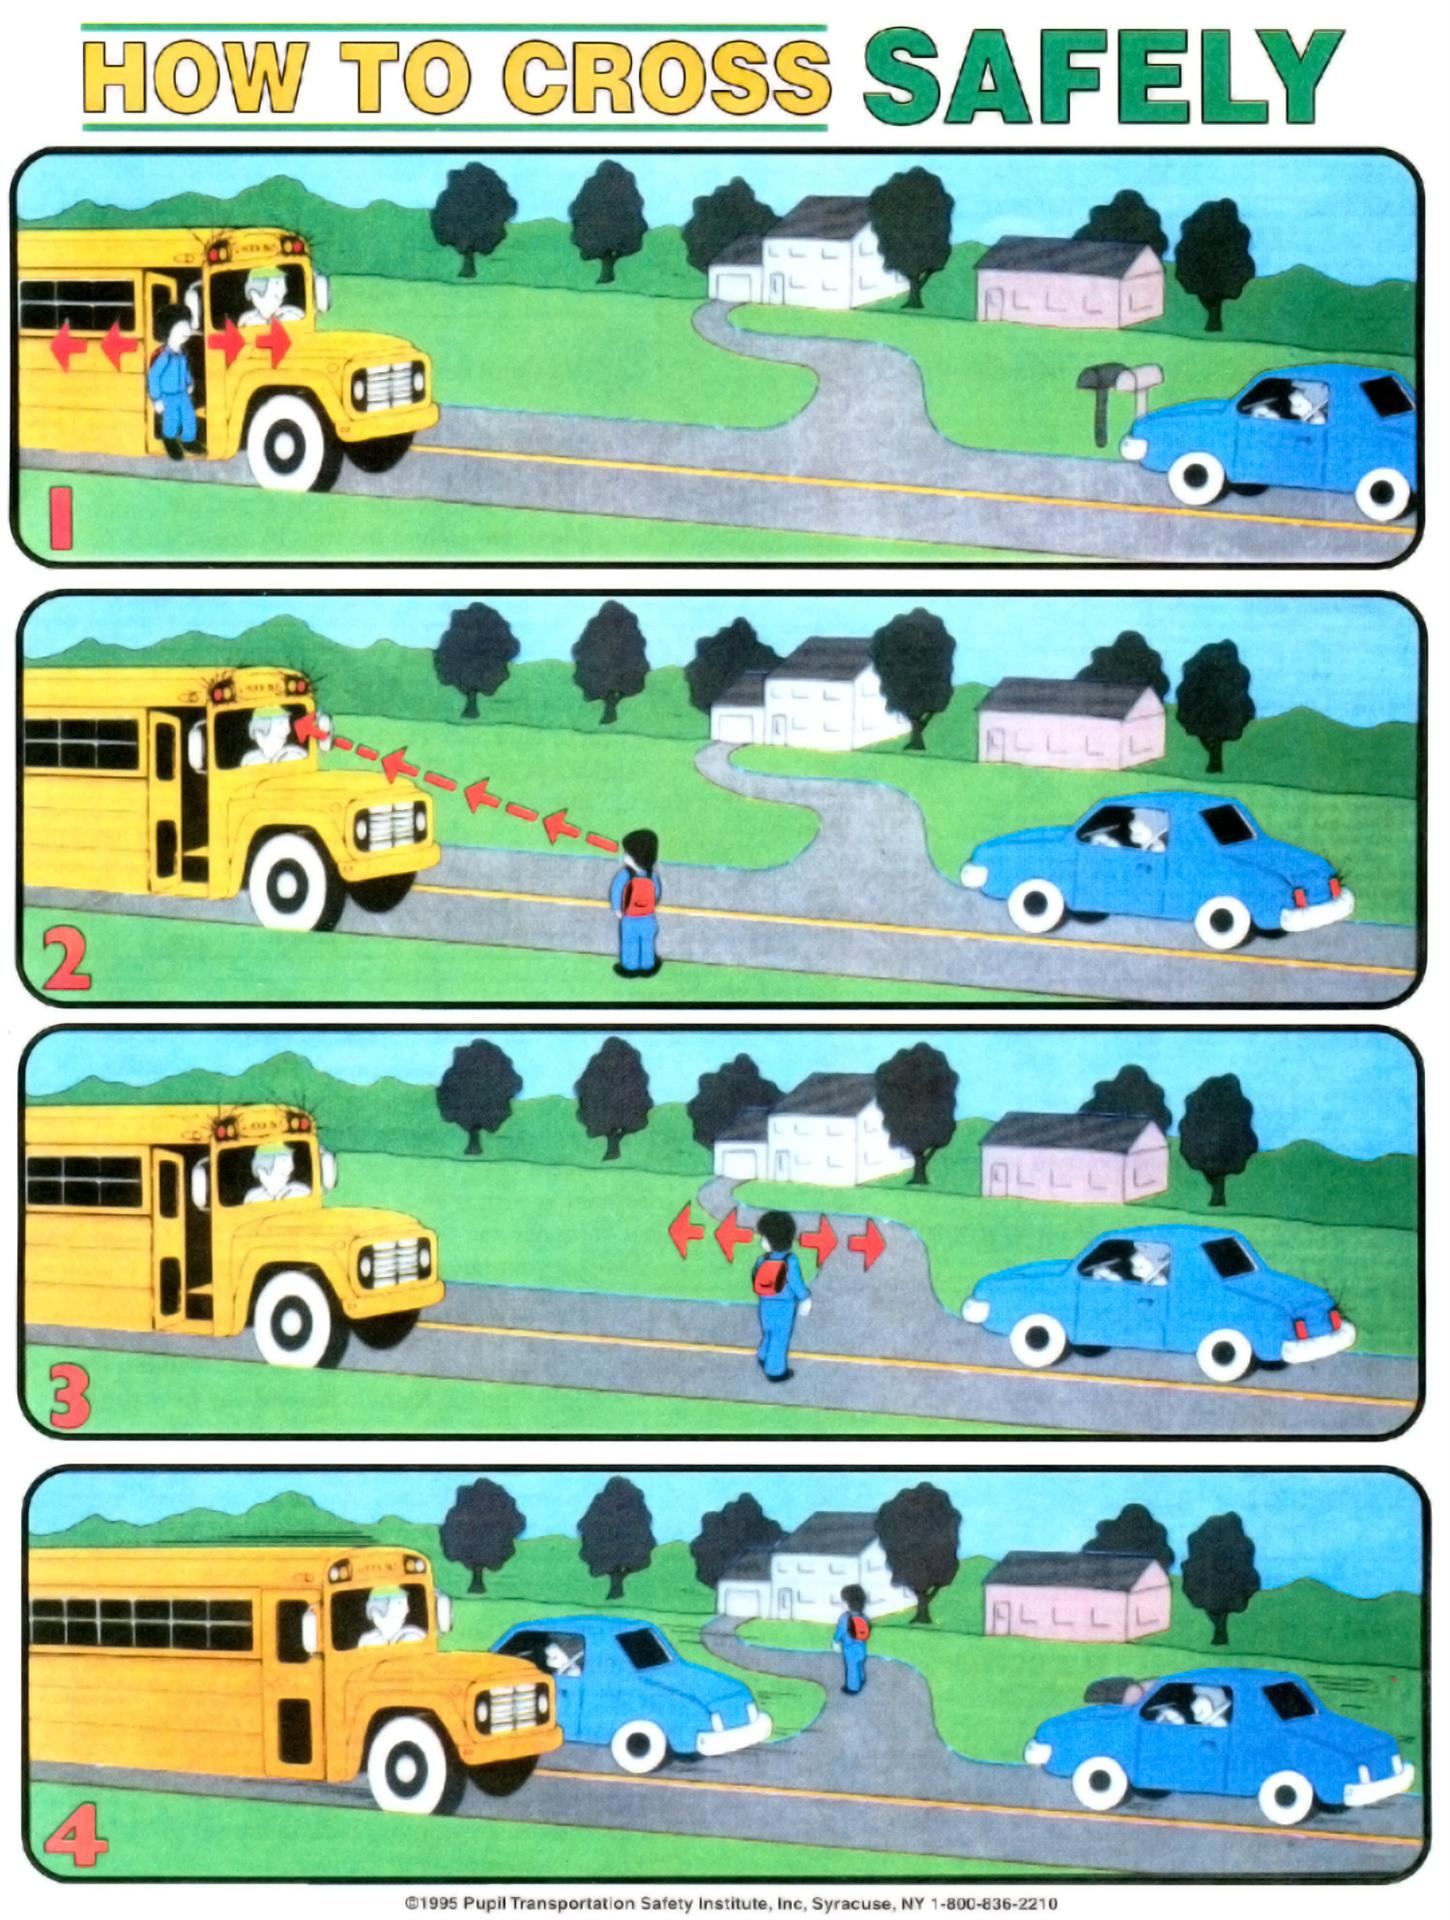 School Bus Safety Crossing Graphic